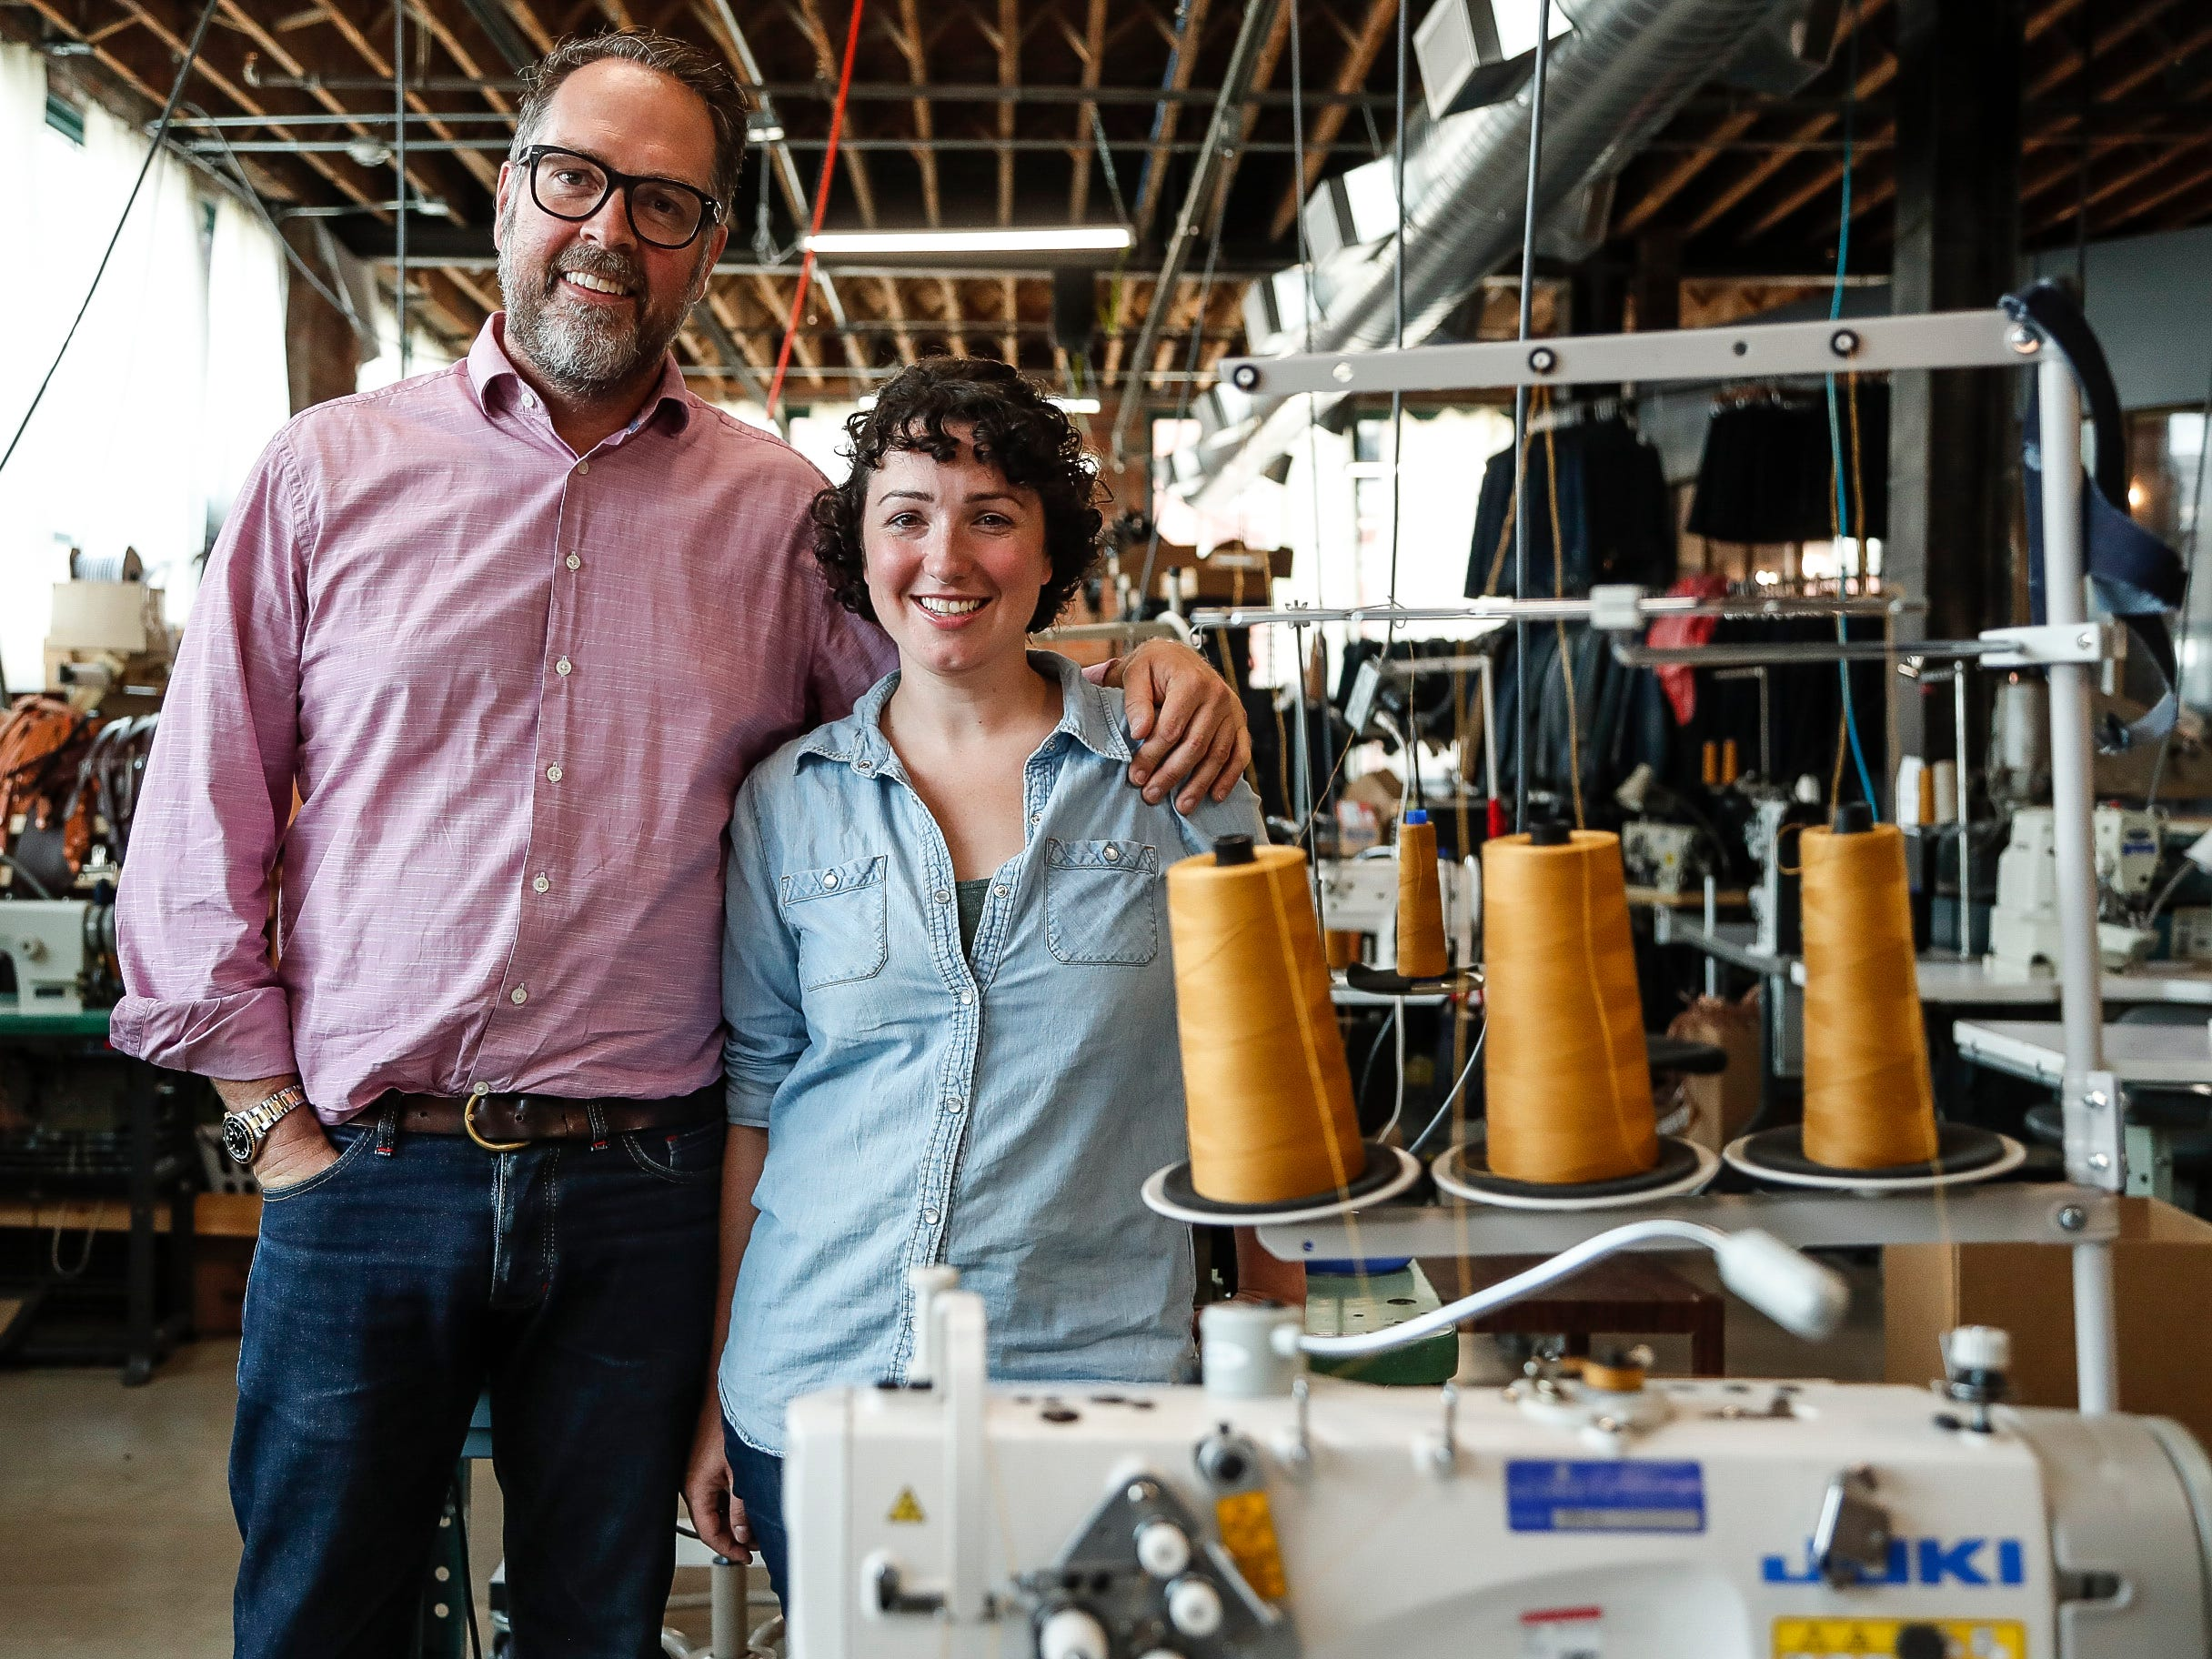 Detroit Denim: Entrepreneur's made-in-USA jeans business fits him well